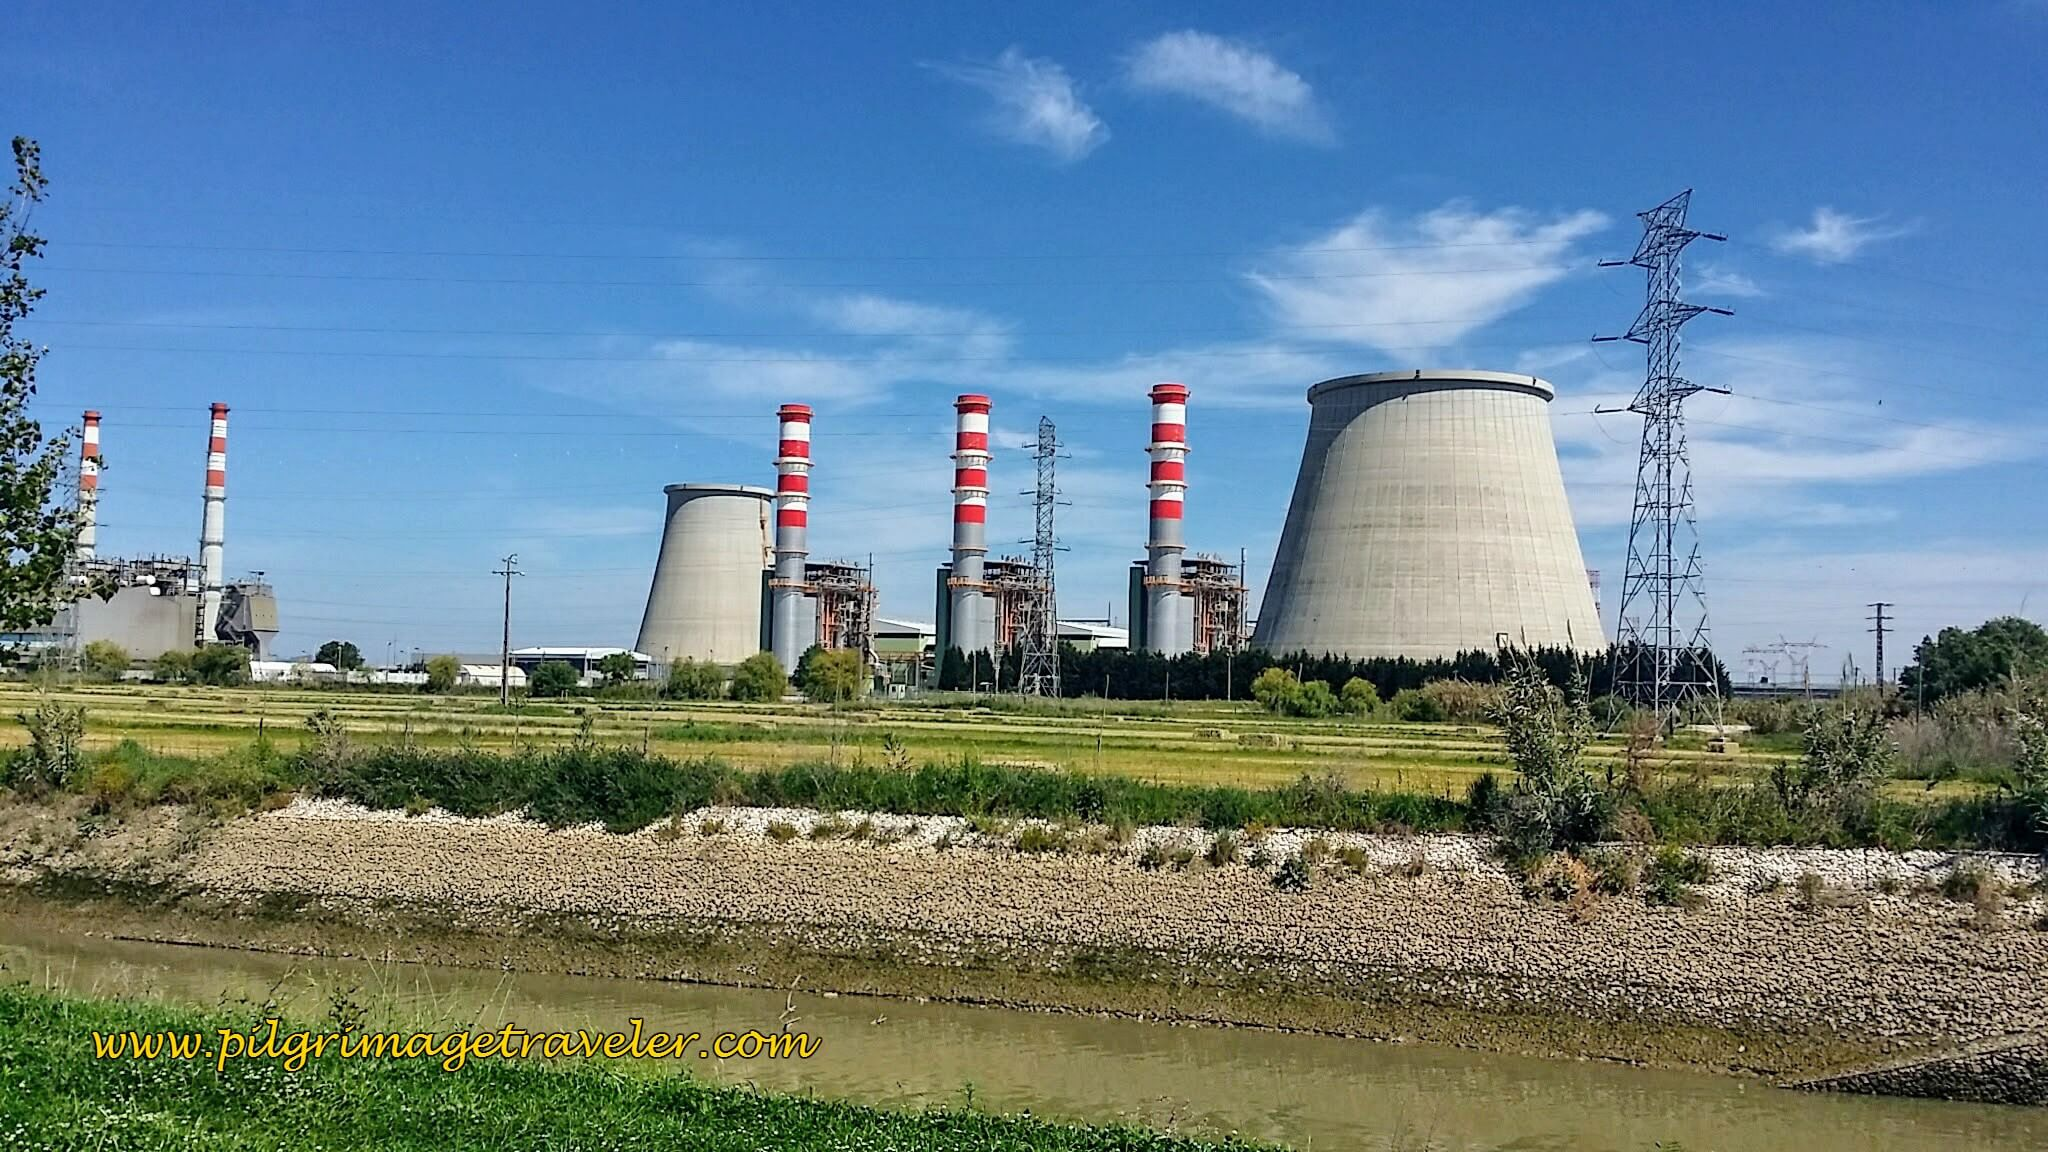 Ribatejo Power Station, Carregado, Portugal